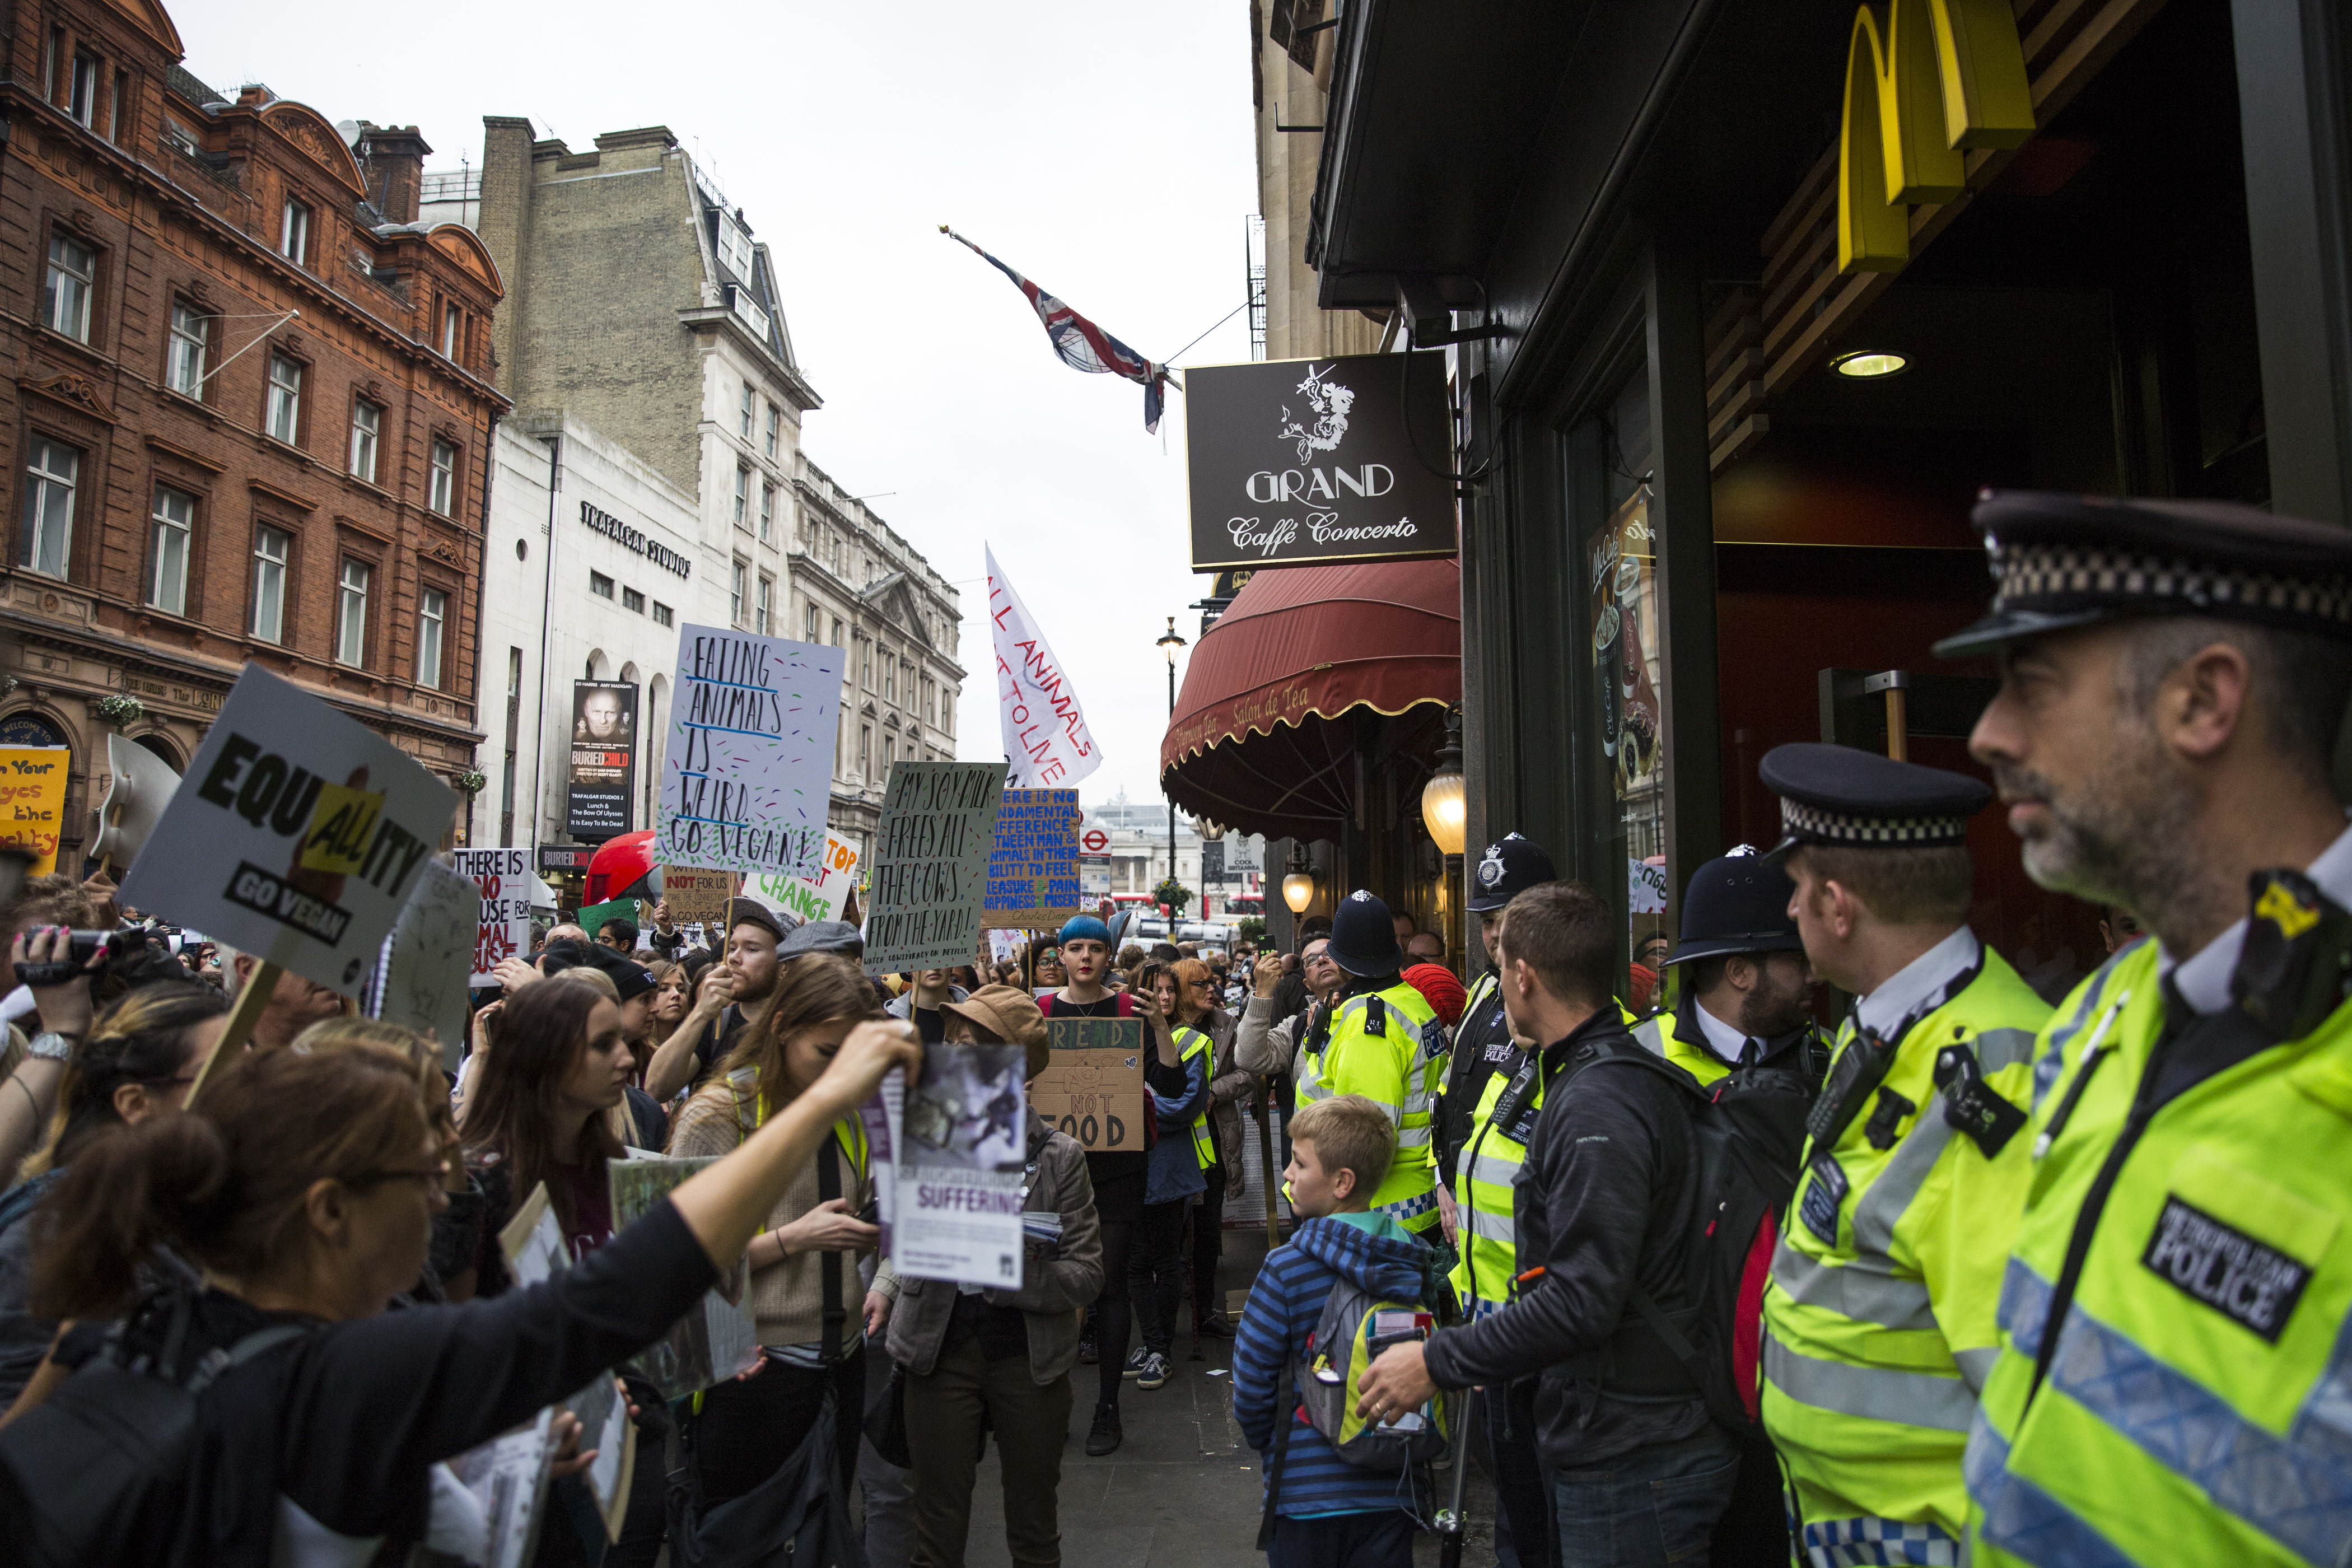 LONDON, ENGLAND - OCTOBER 29: Protesters wave placards during an animal rights march outside McDonald's restaurant on Whitehall on October 29, 2016 in London, England. Hundreds of protesters and activists march through central London today calling for greater animal rights and encouraging people to go vegan. (Photo by Jack Taylor/Getty Images)